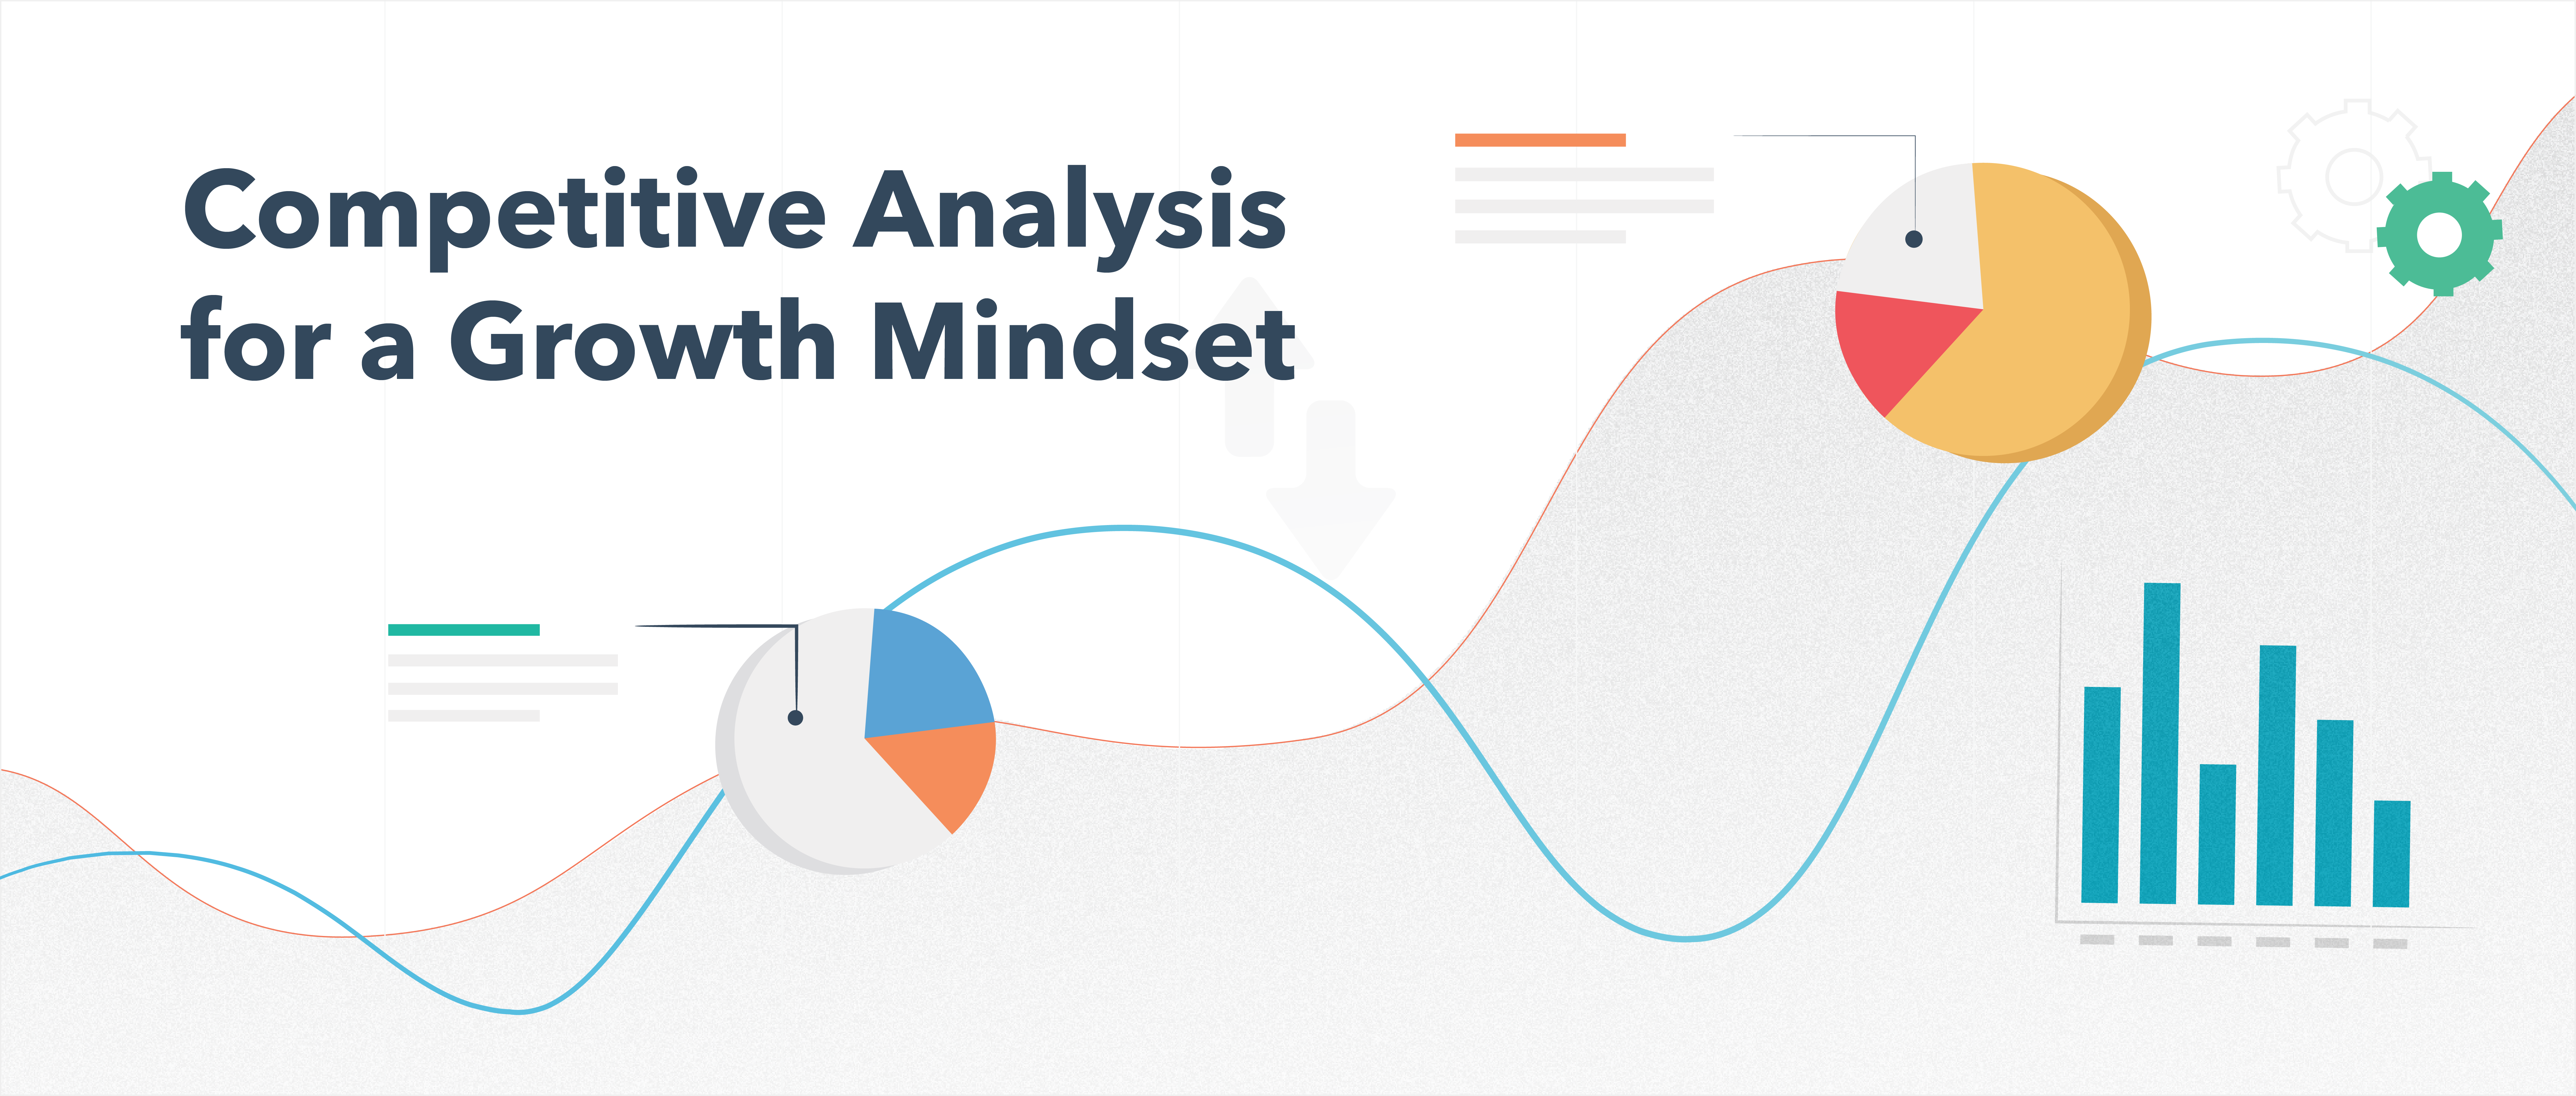 Competitive Analysis for a Growth Mindset